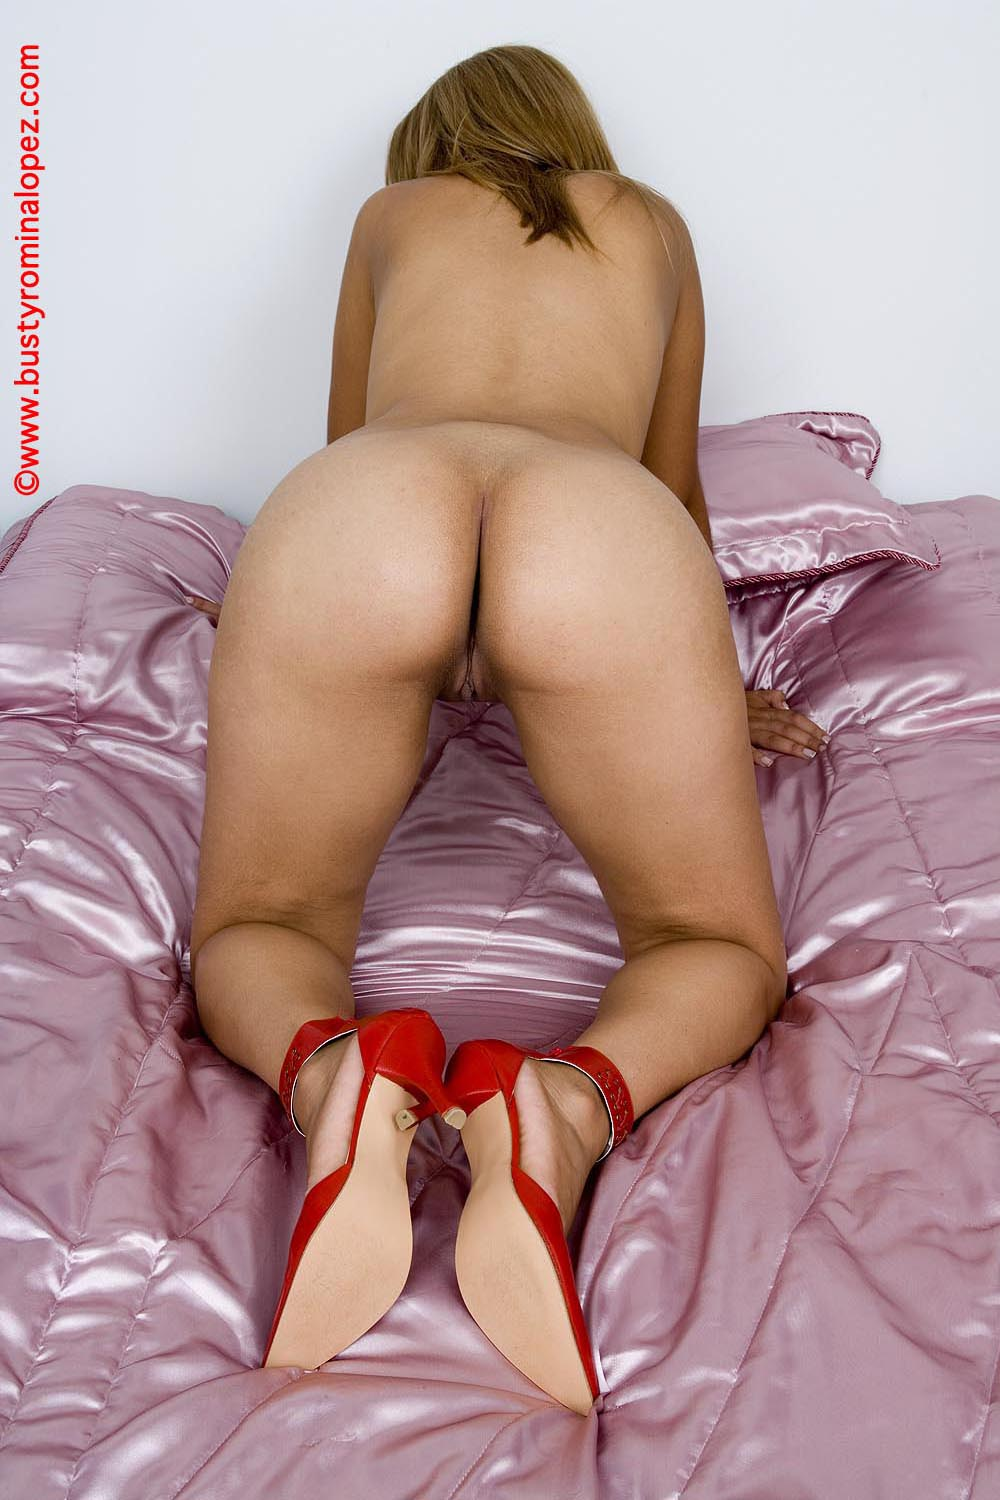 Horny latina takes another huge load 8